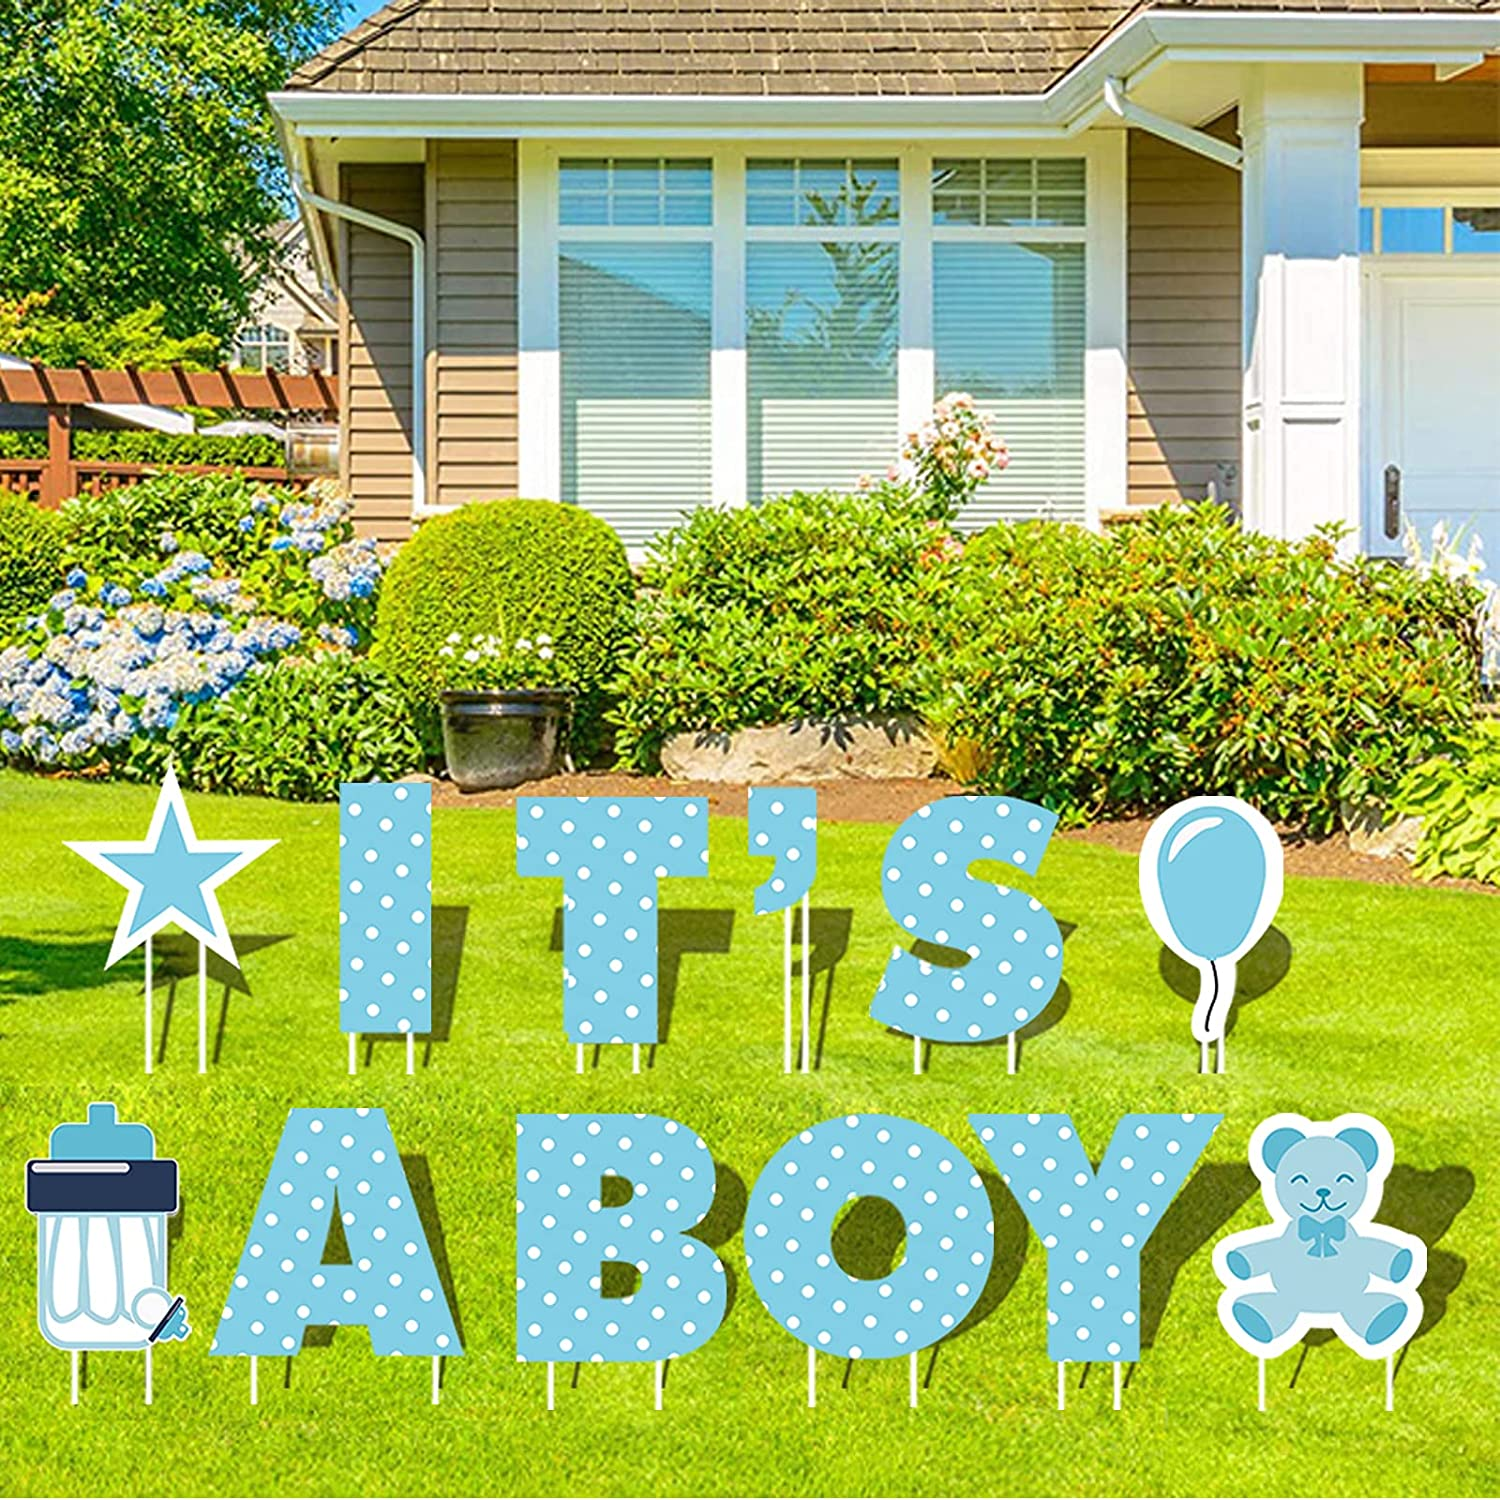 GFT Large 18 OFFer inch IT'S A Boy Baby Yard Blue with Sale Special Price Sign Signs